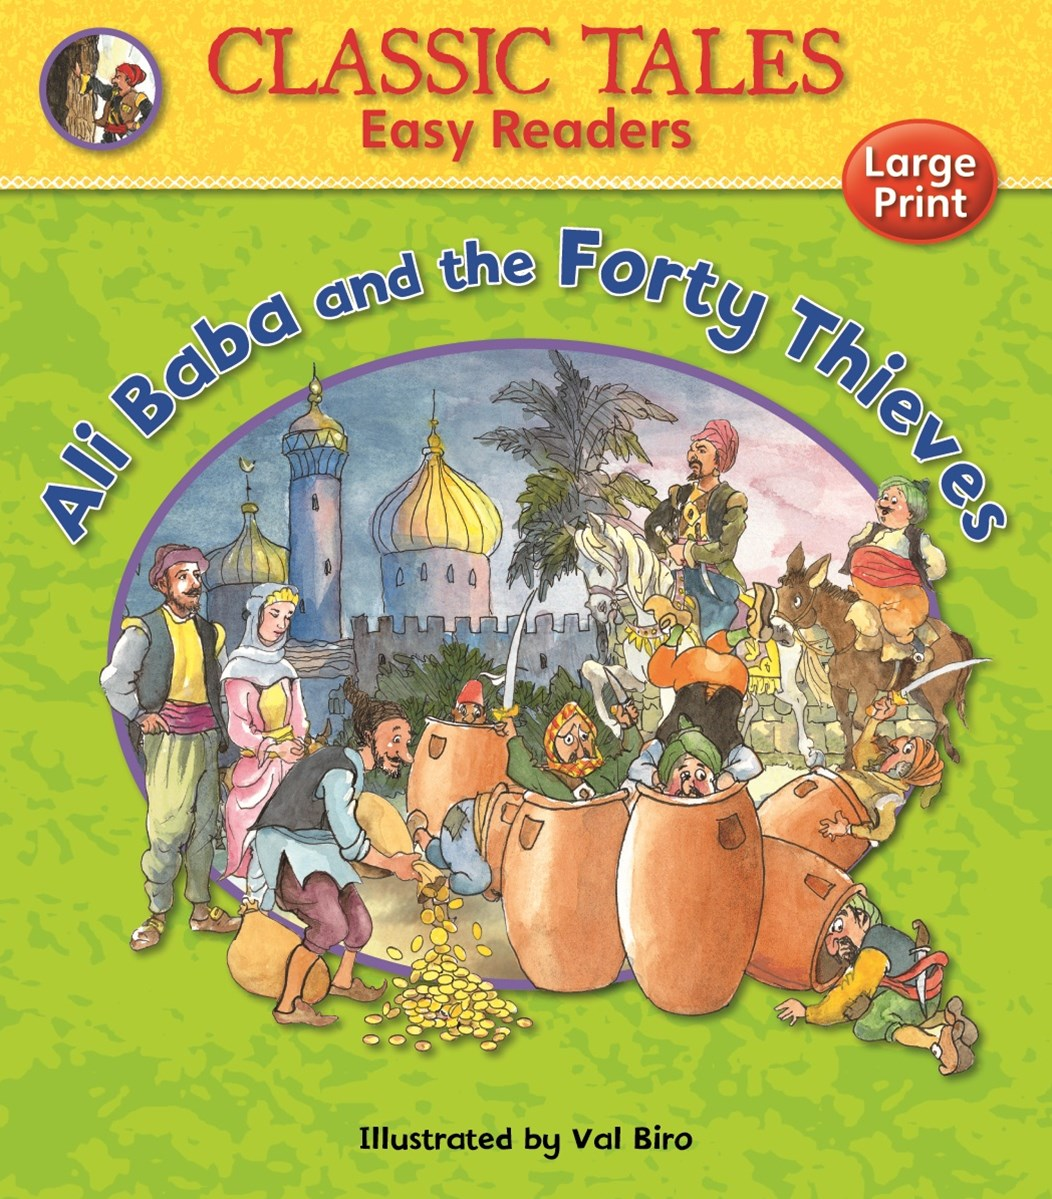 Classic Tales Easy Readers: Ali Baba and the Forty Thieves